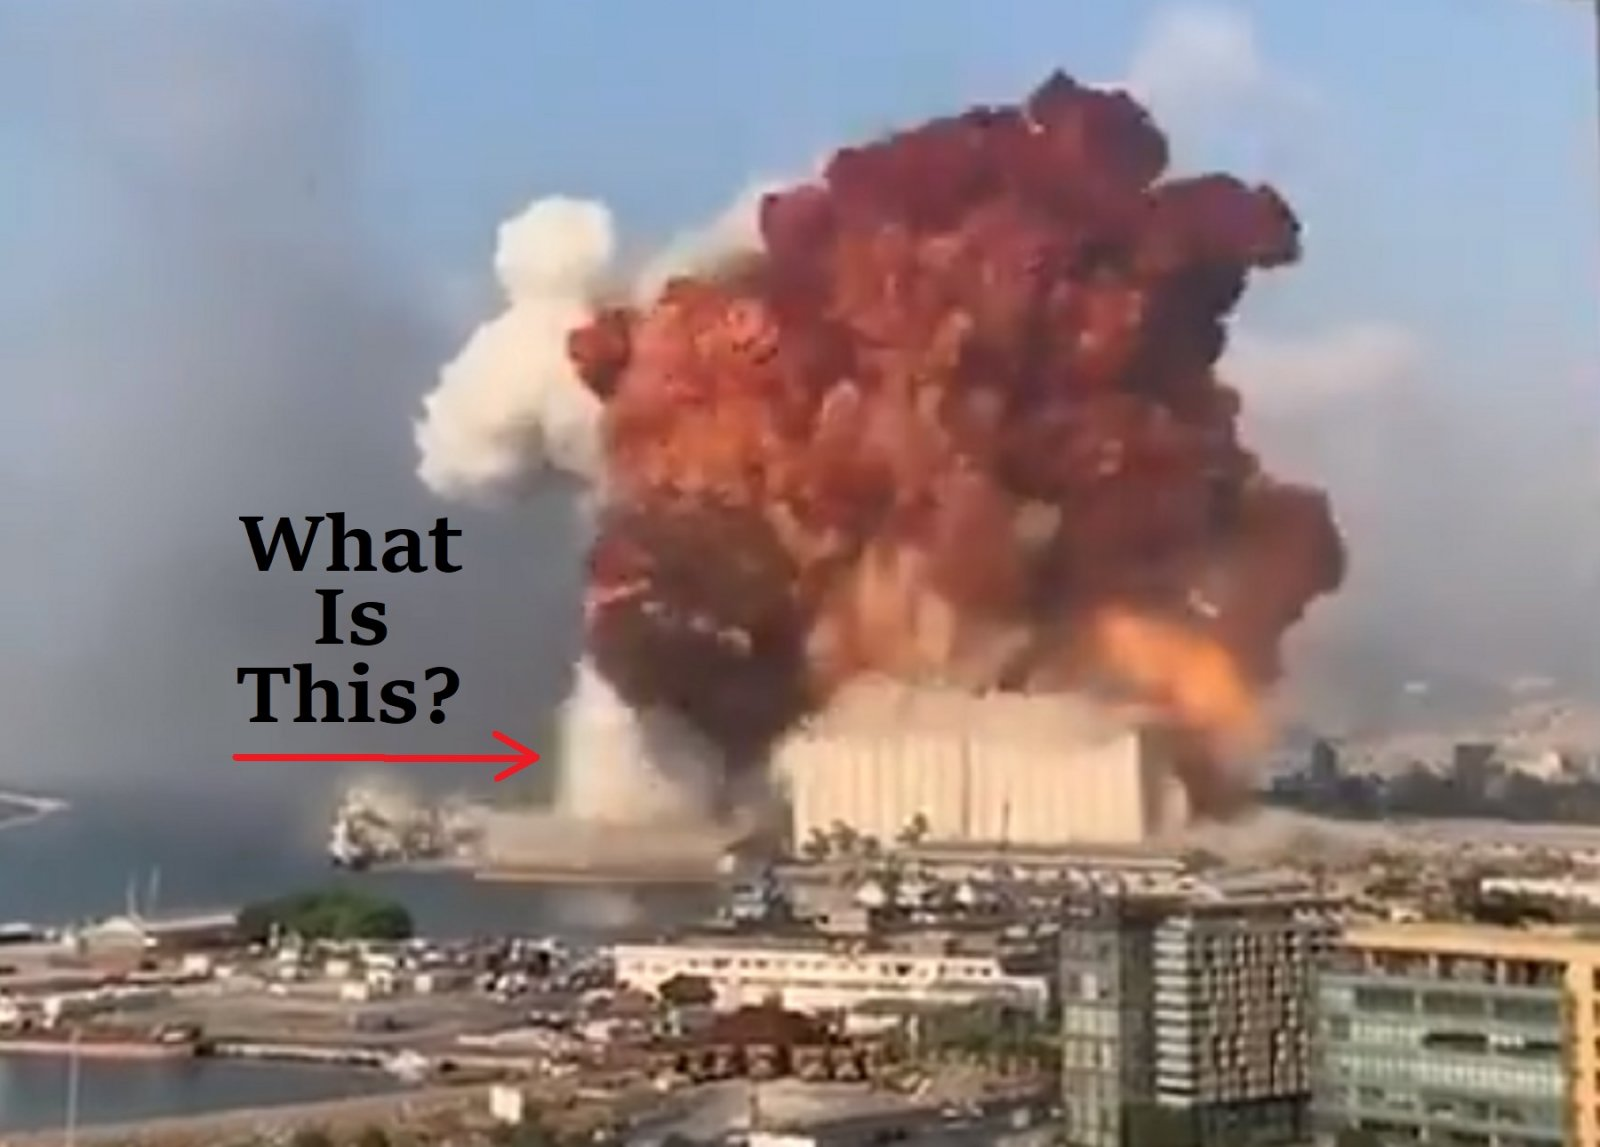 beirut_explosion_whatisthis.jpg